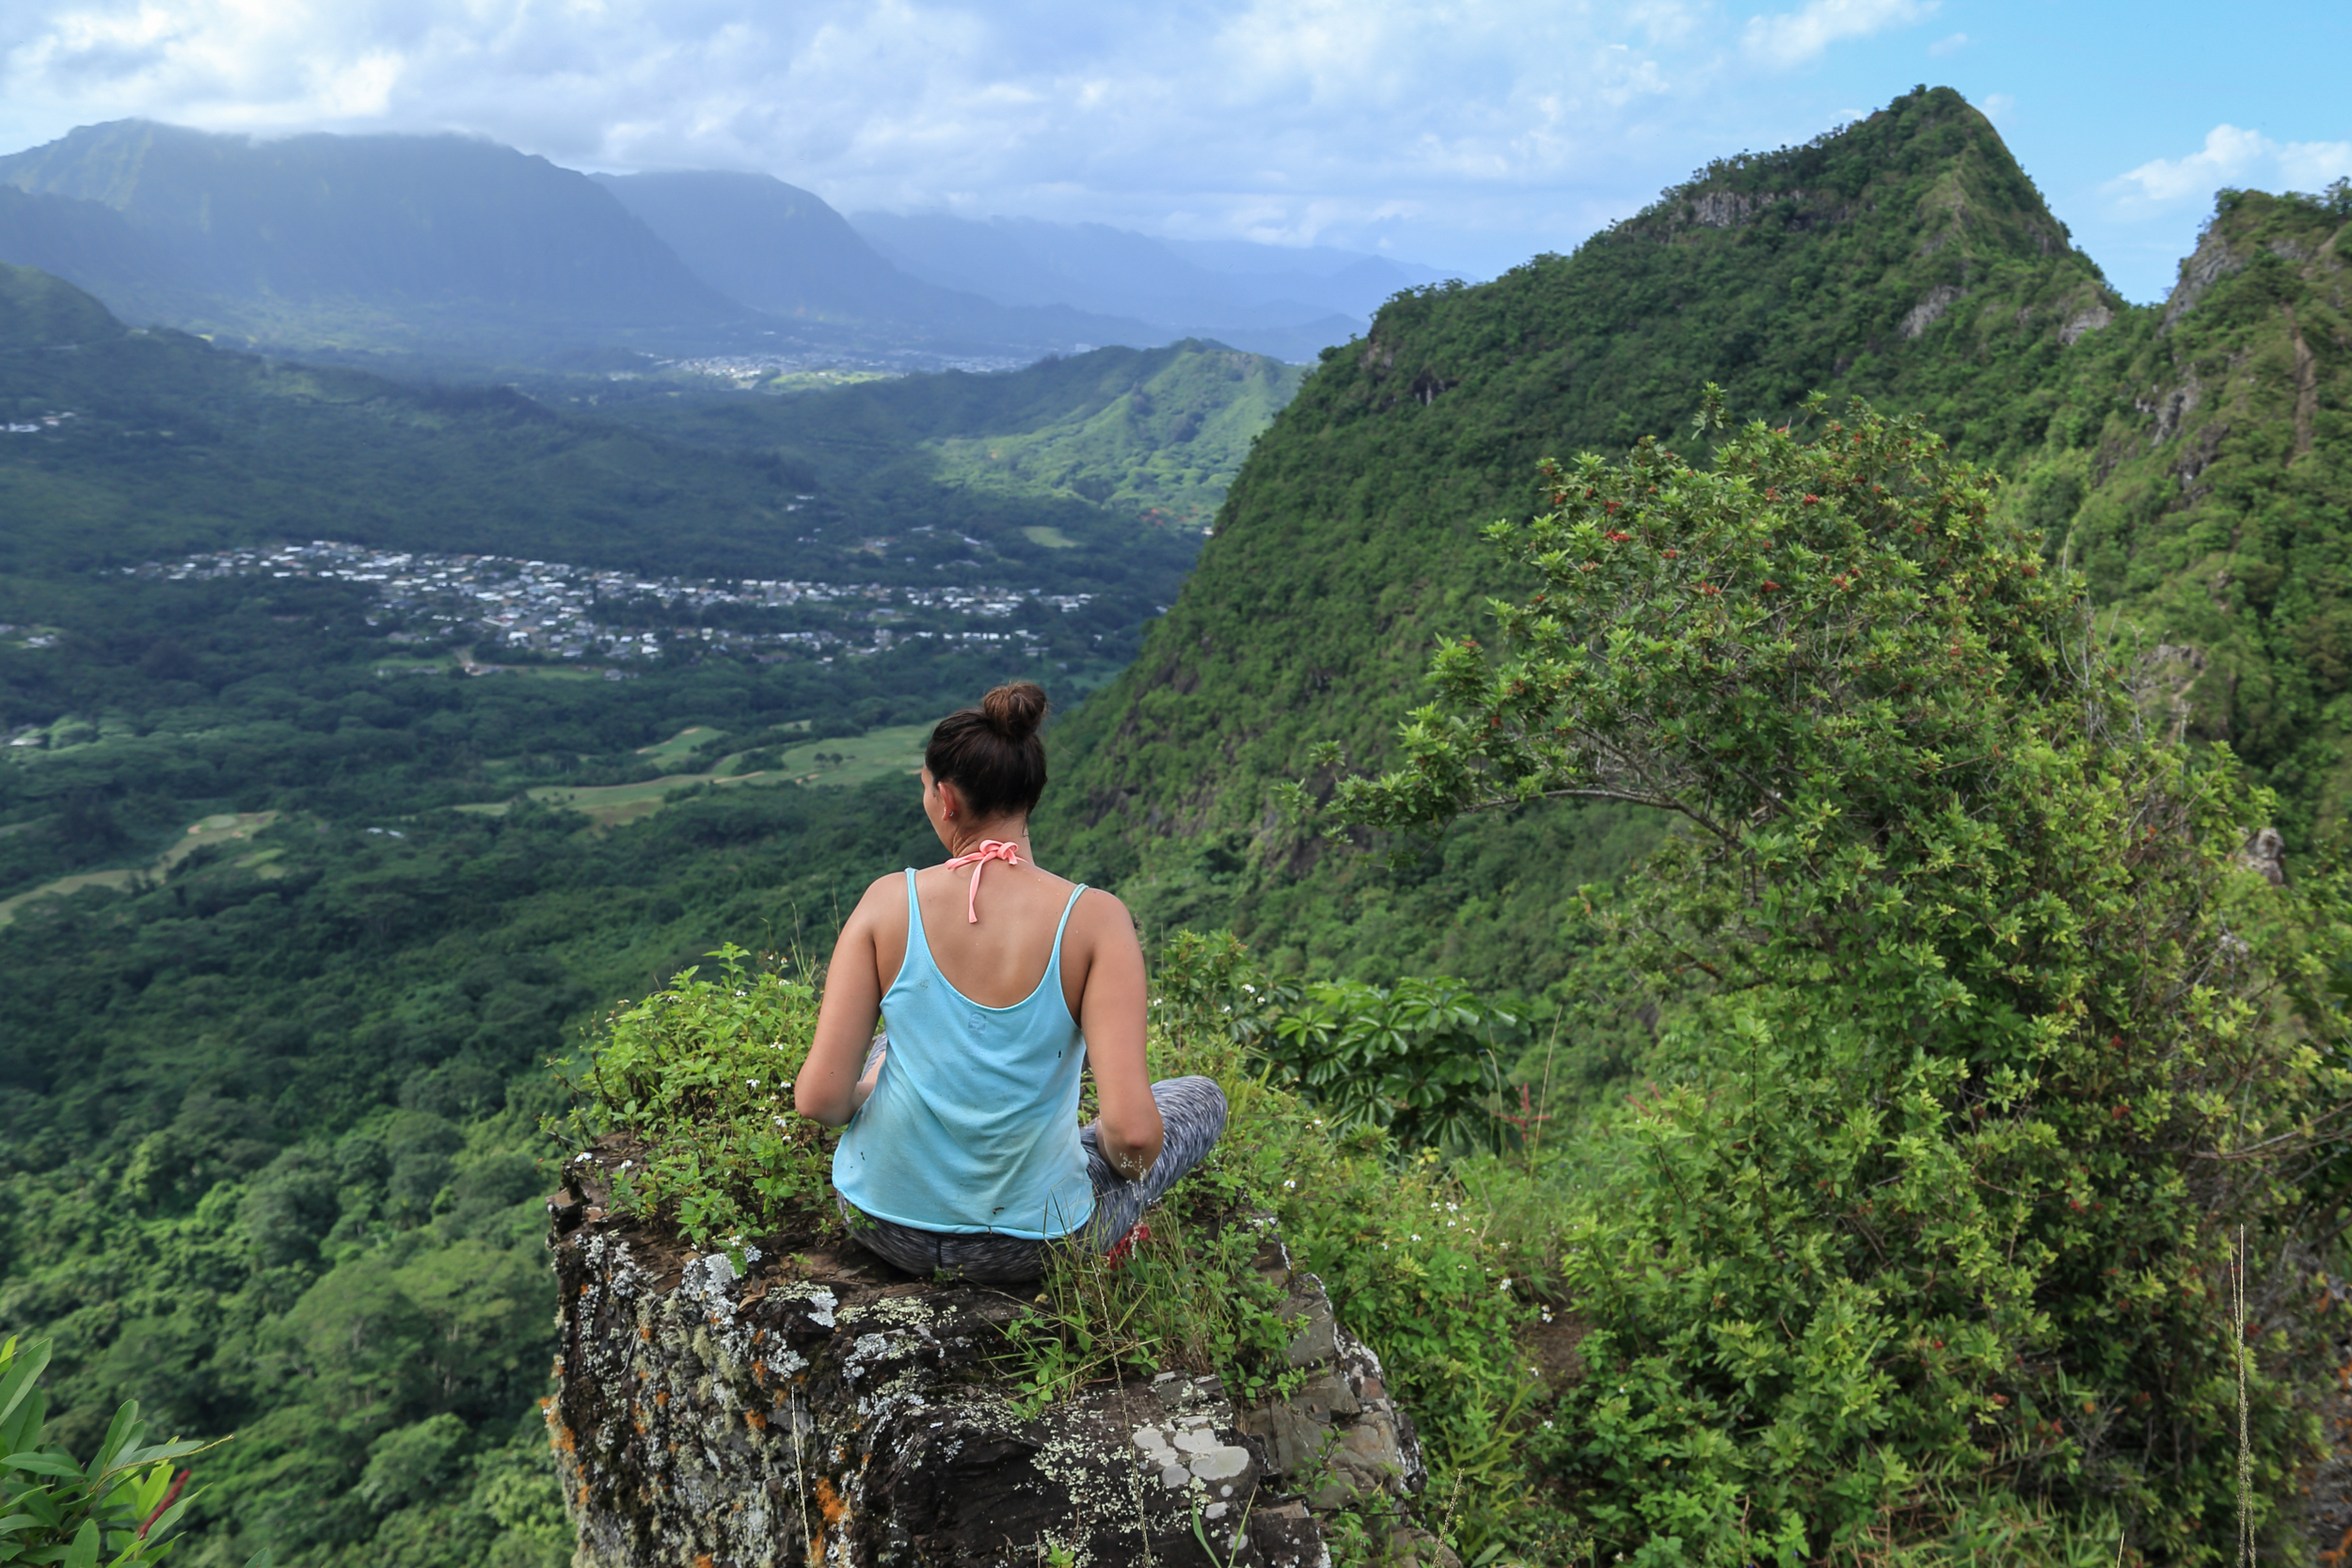 Halfway up the third peak looking out at Kailua, the first two peaks, and the Ko'olau mountains.